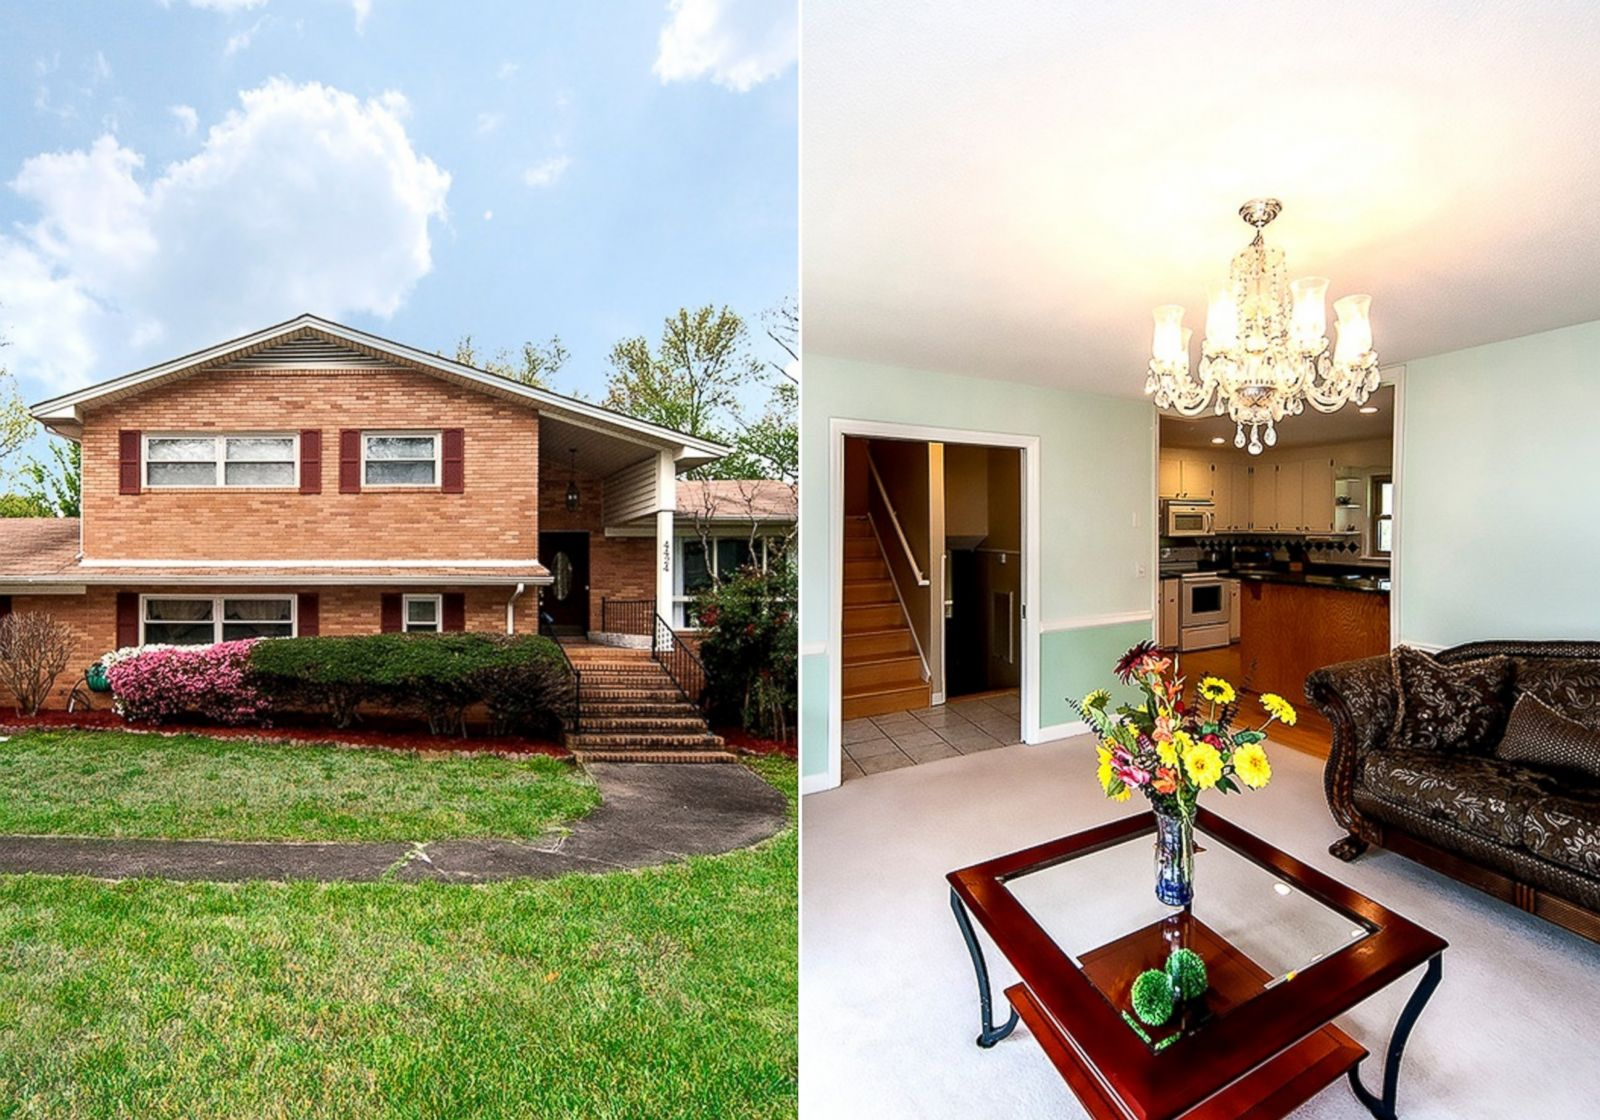 4 bedroom homes for sale under 200 000 photos image 1 4 bedroom house for sale charlotte nc